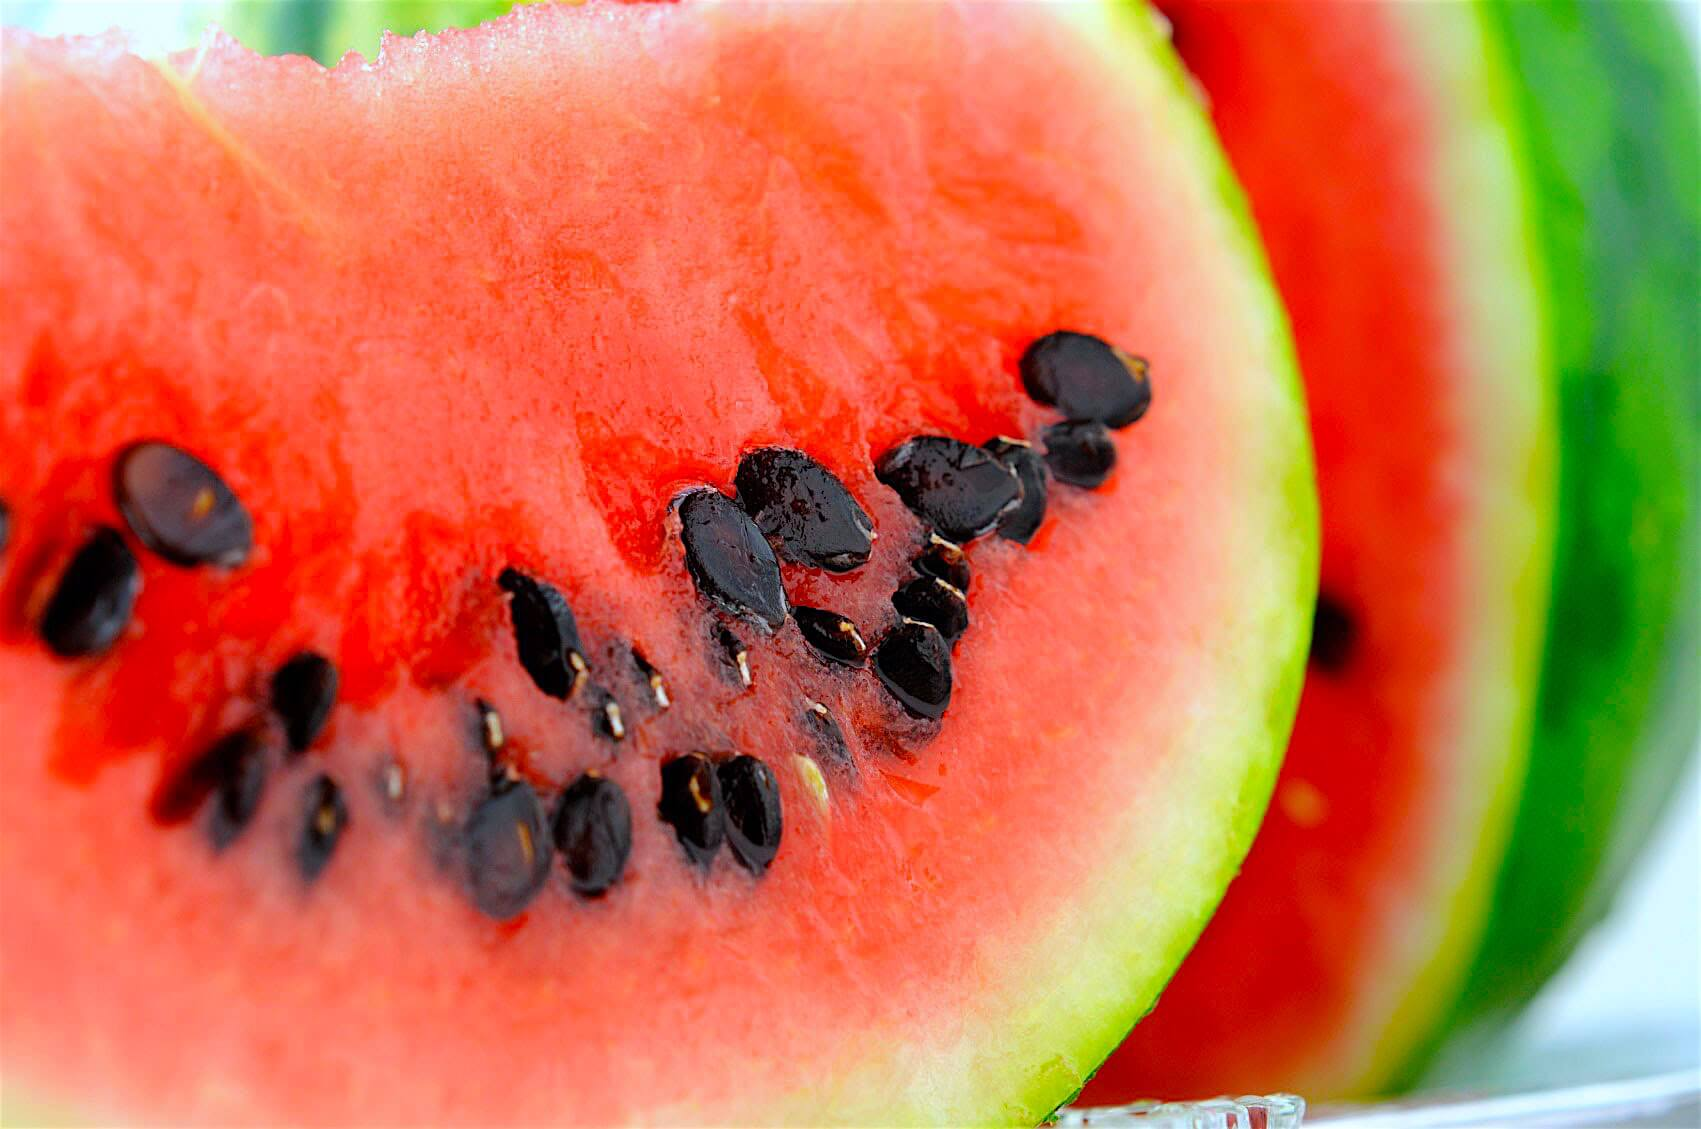 Forum on this topic: 9 Best Benefits Of Watermelon Seeds For , 9-best-benefits-of-watermelon-seeds-for/